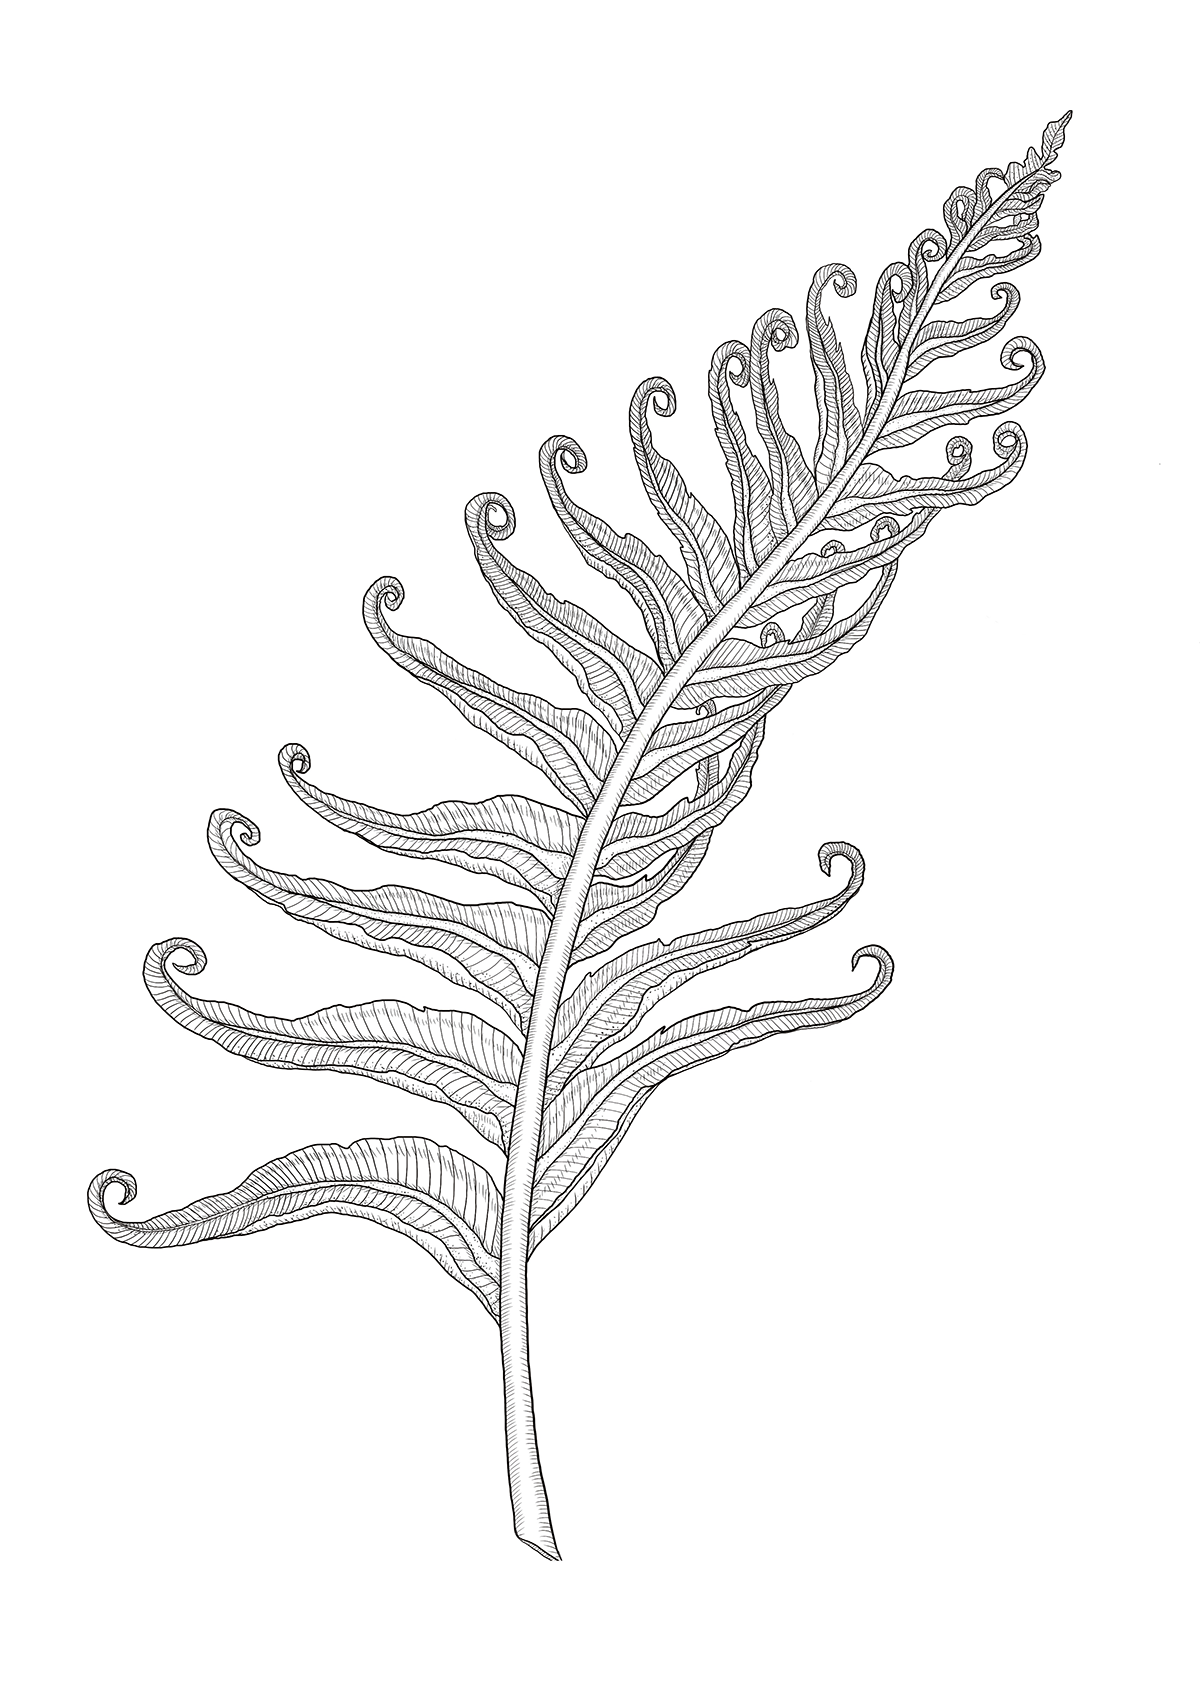 octopus19_fern_01small.png